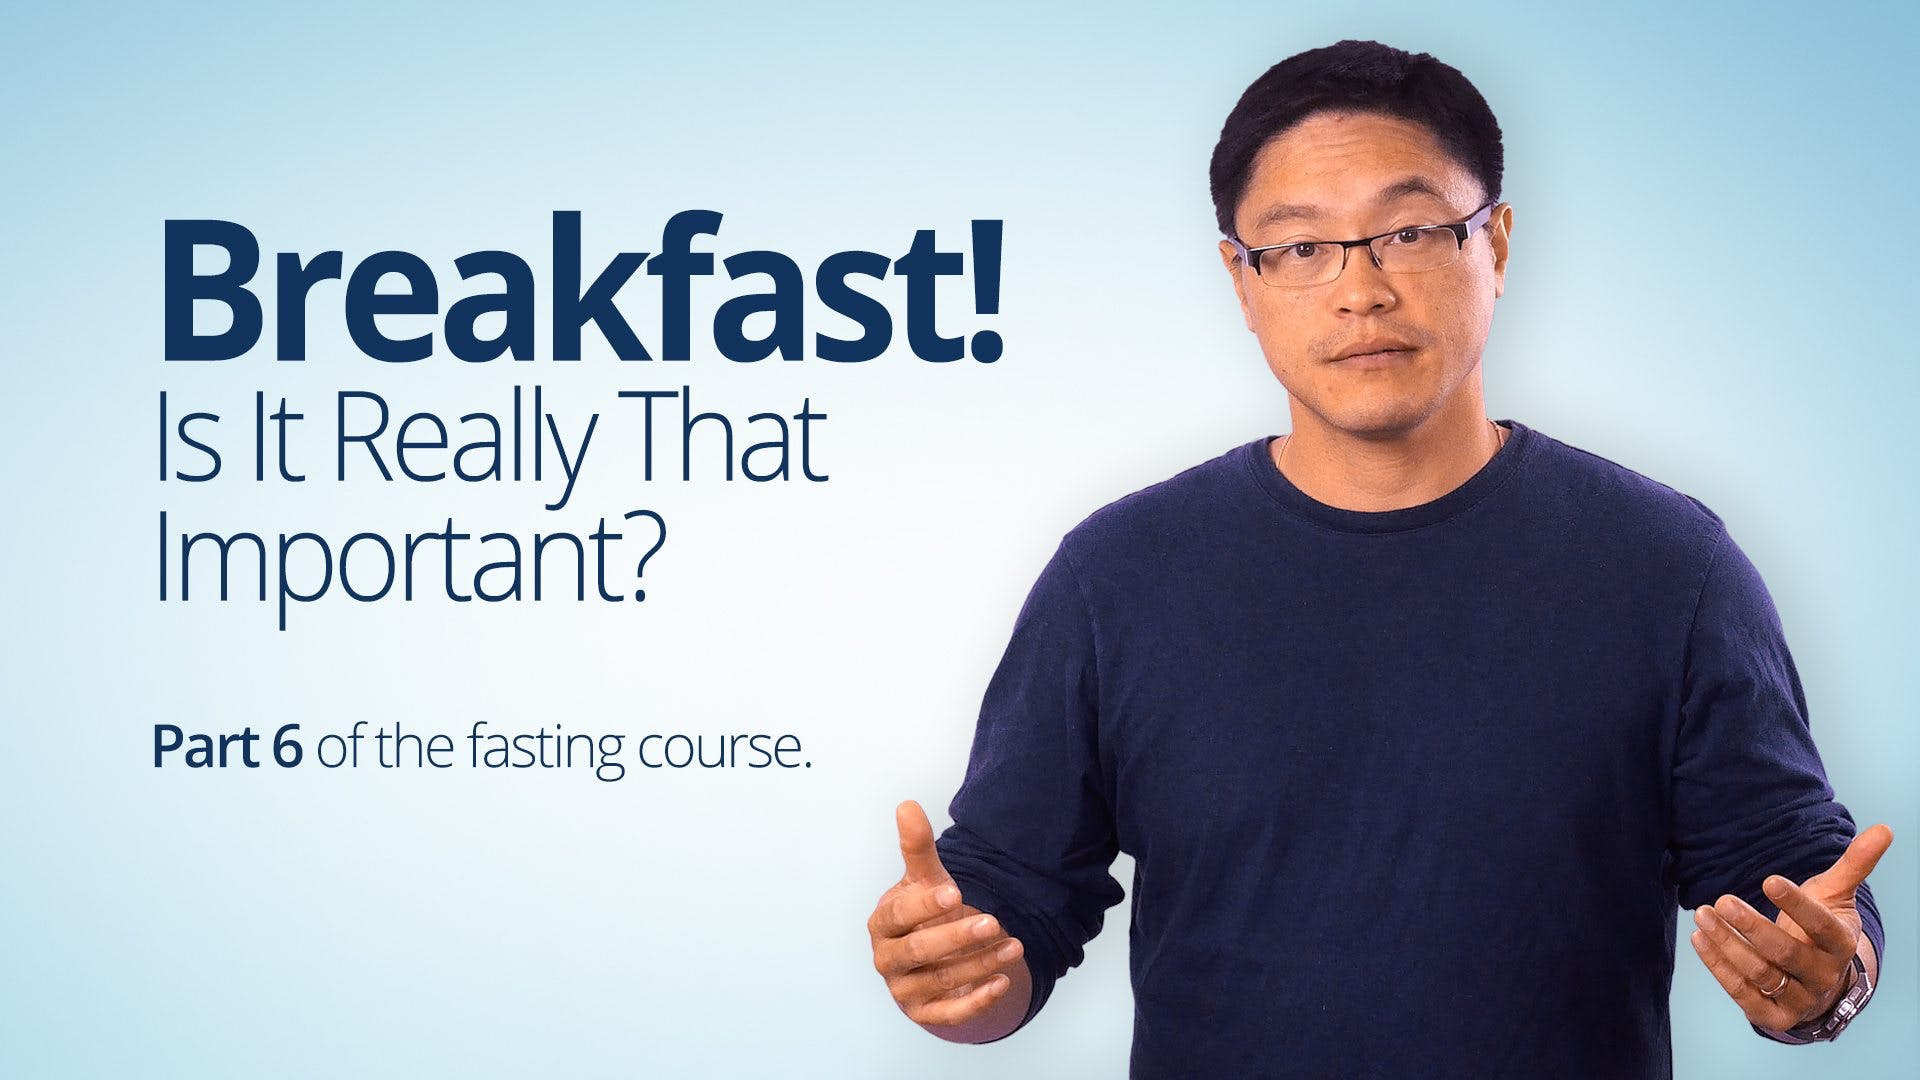 Breakfast! Is It Really That Important? - Diet Doctor